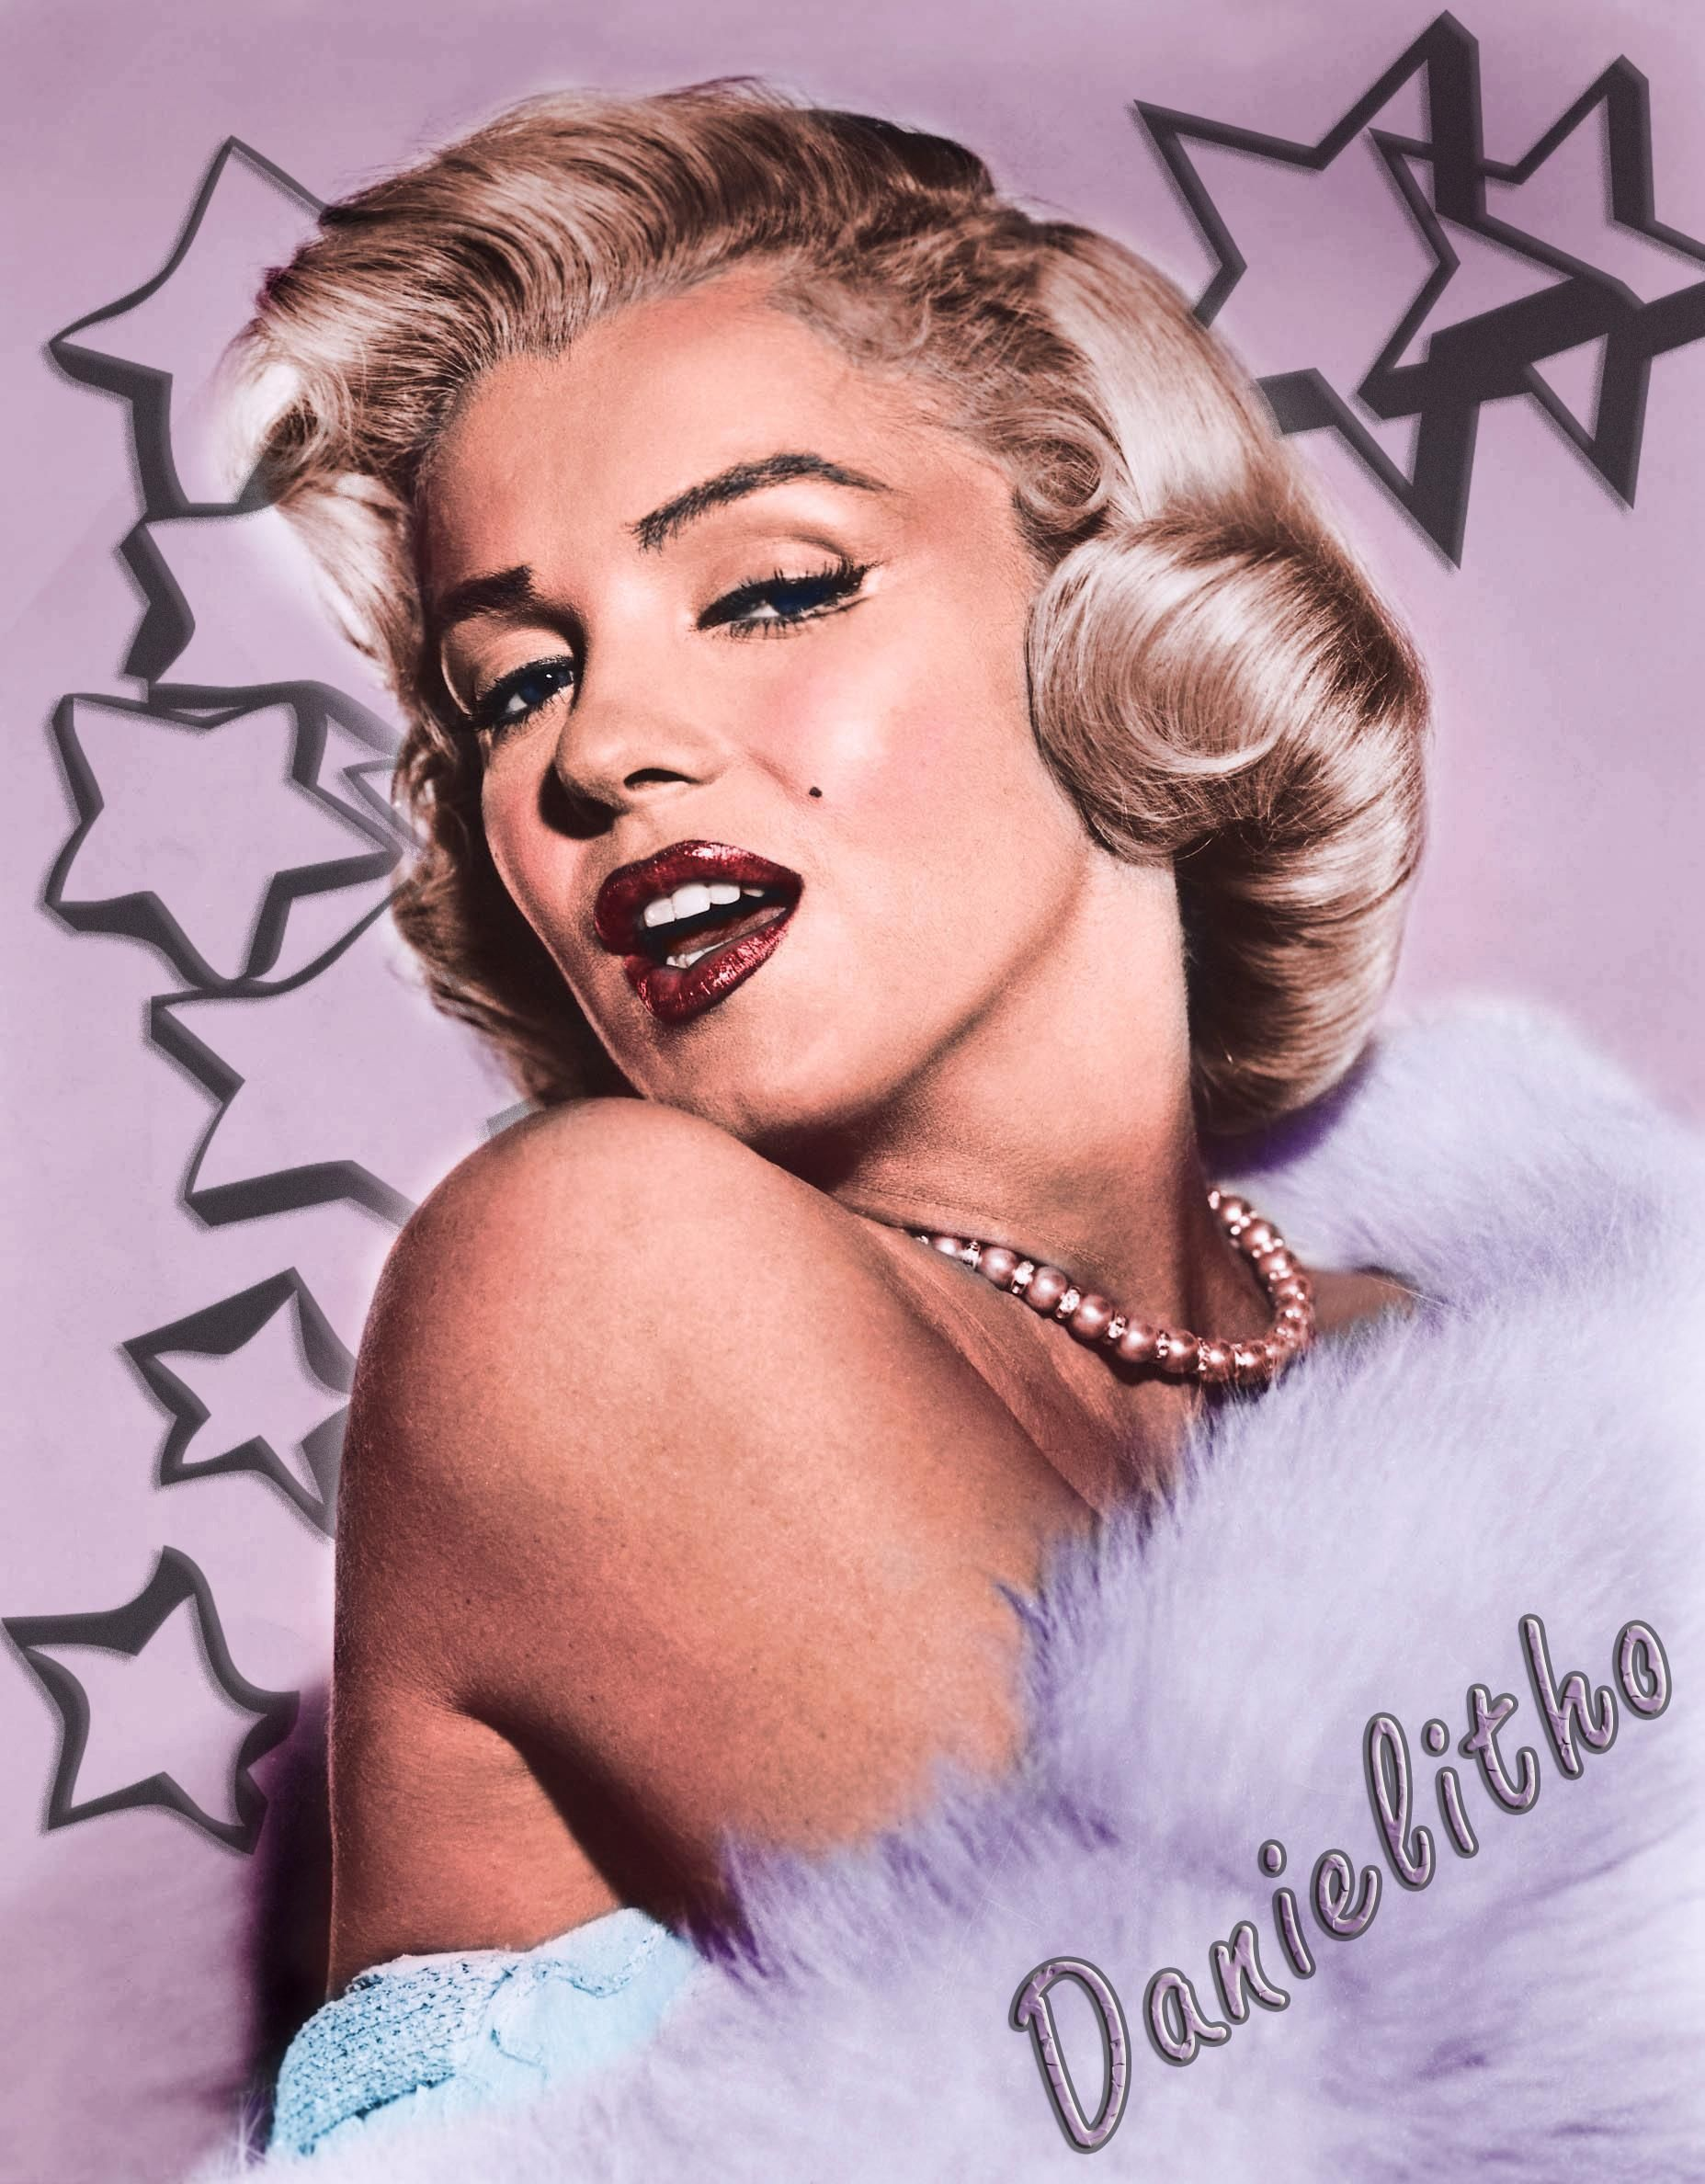 Marilyn Monroe Photoshop | Photoshop Color | Pinterest